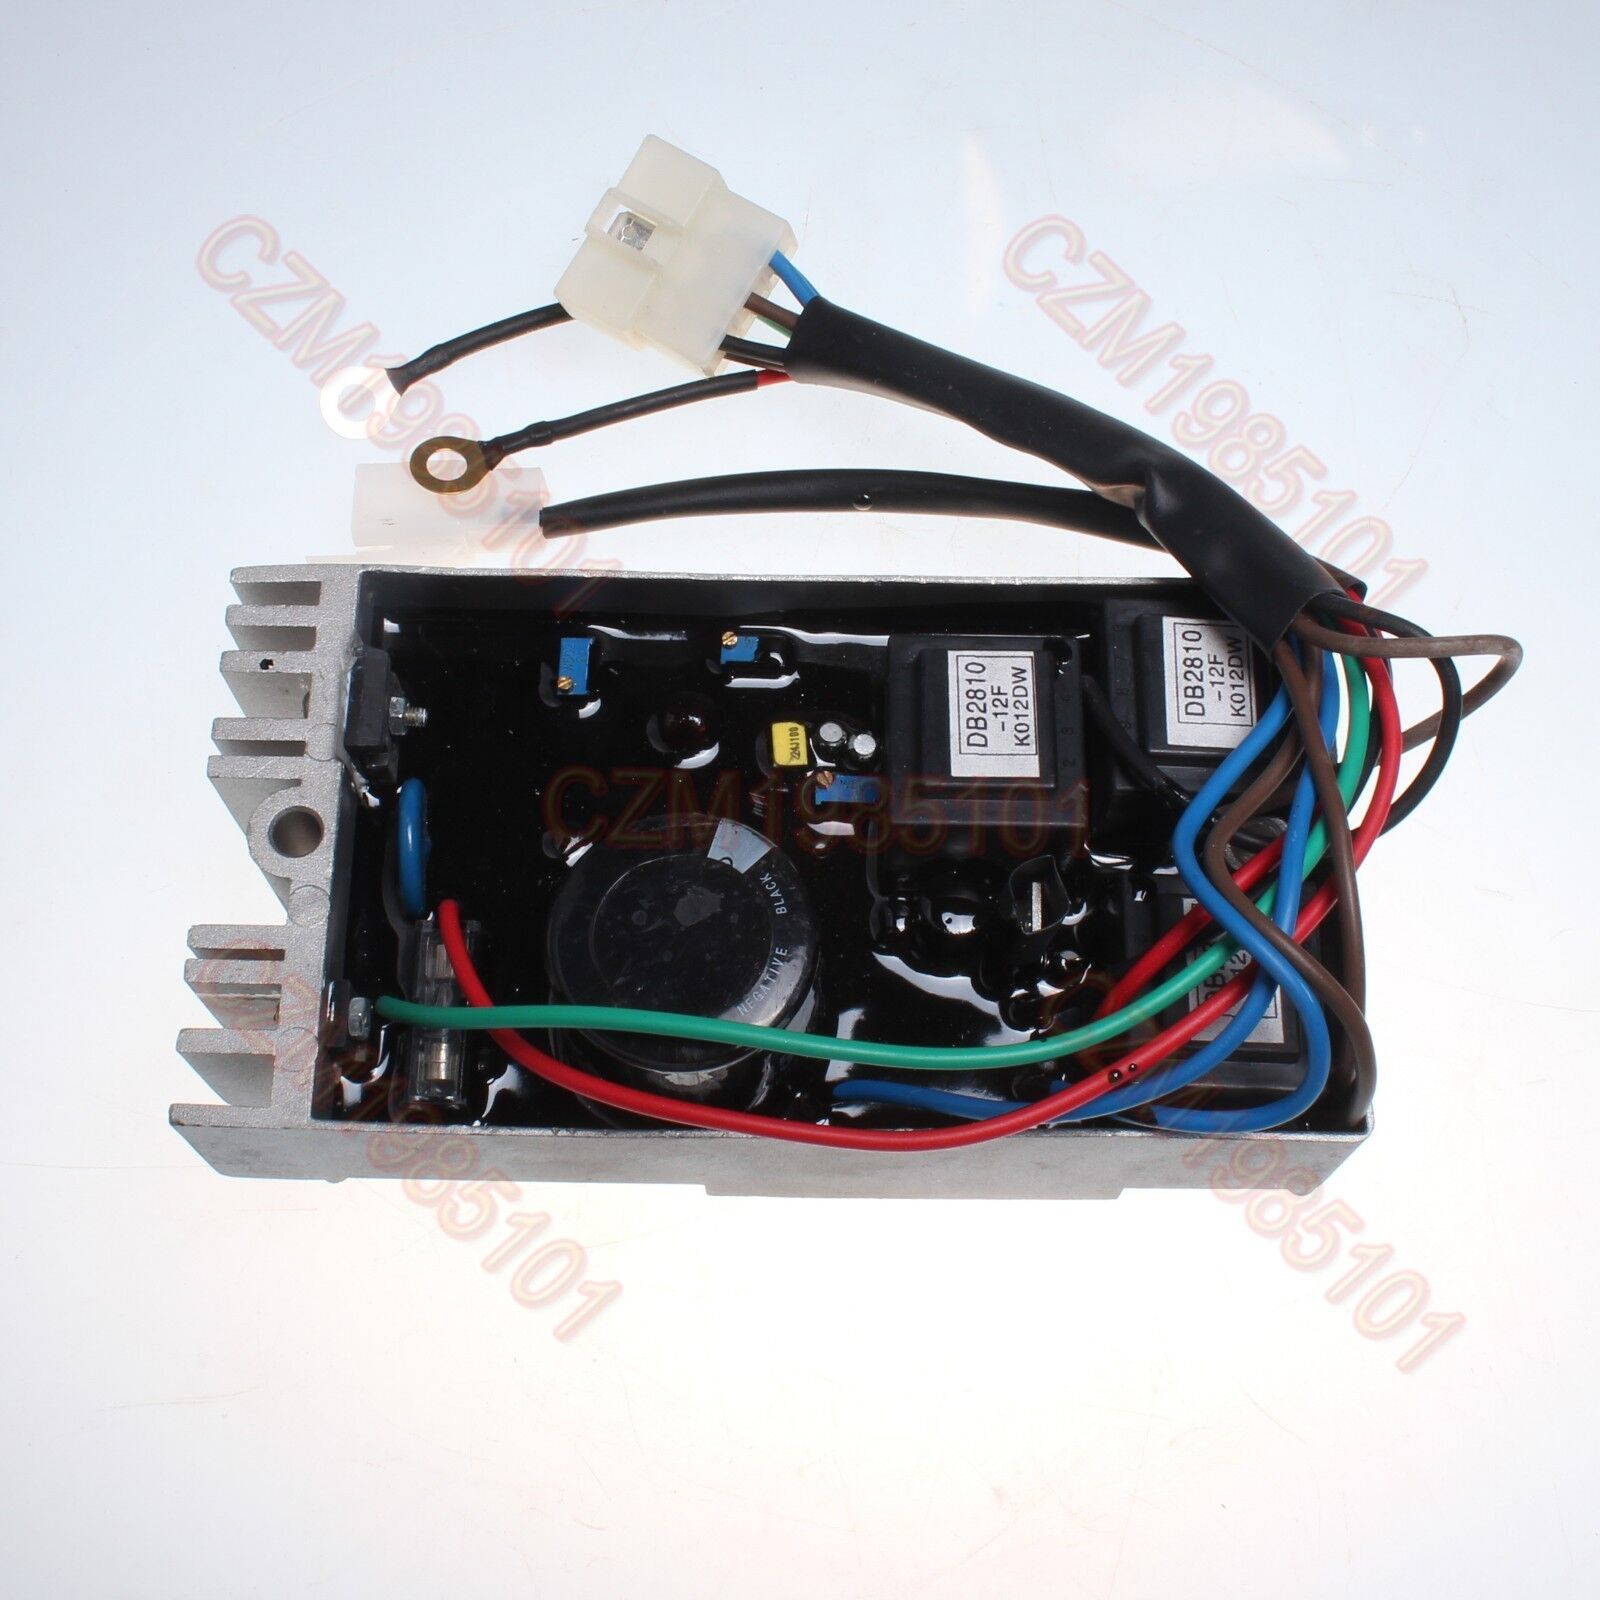 Voltage Regulator KI DAVR 150S3 For KIPOR KAMA 12 15 KW Three